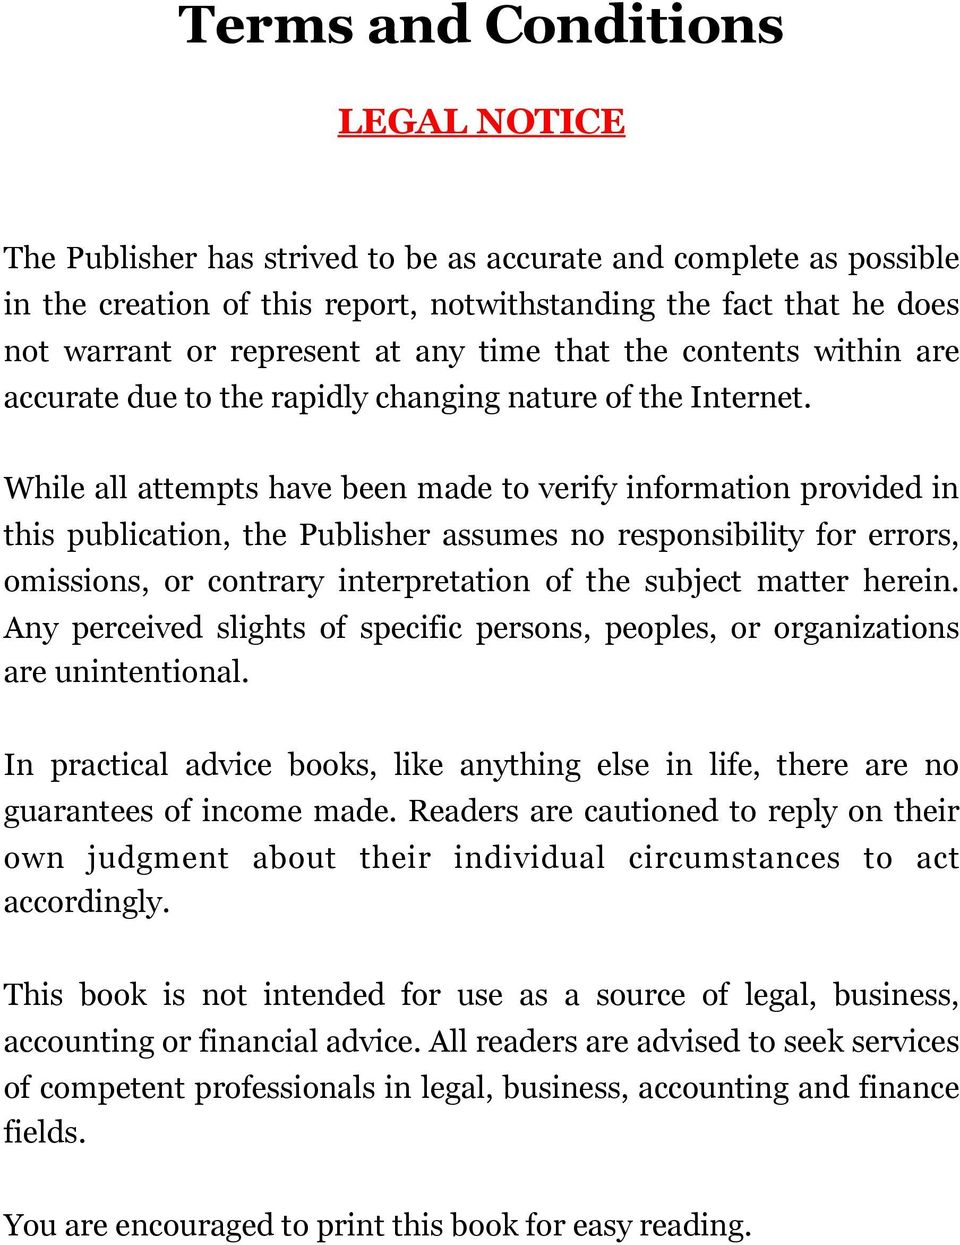 While all attempts have been made to verify information provided in this publication, the Publisher assumes no responsibility for errors, omissions, or contrary interpretation of the subject matter